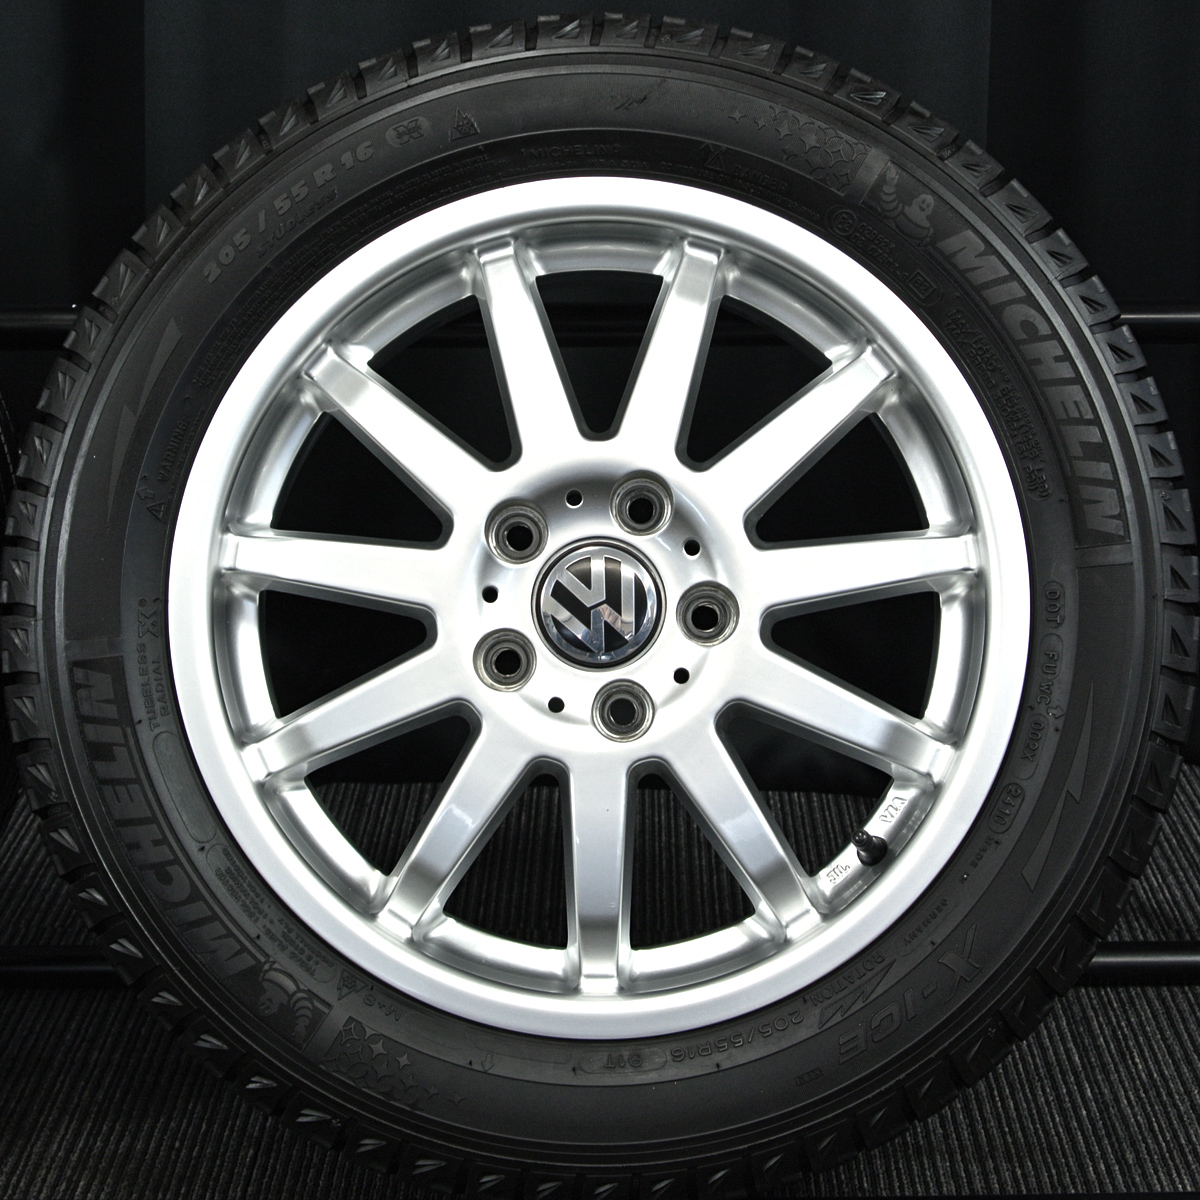 TARGA C-WORKS シルバー MICHELIN X-ICE XI2 205/55R16 4本SET